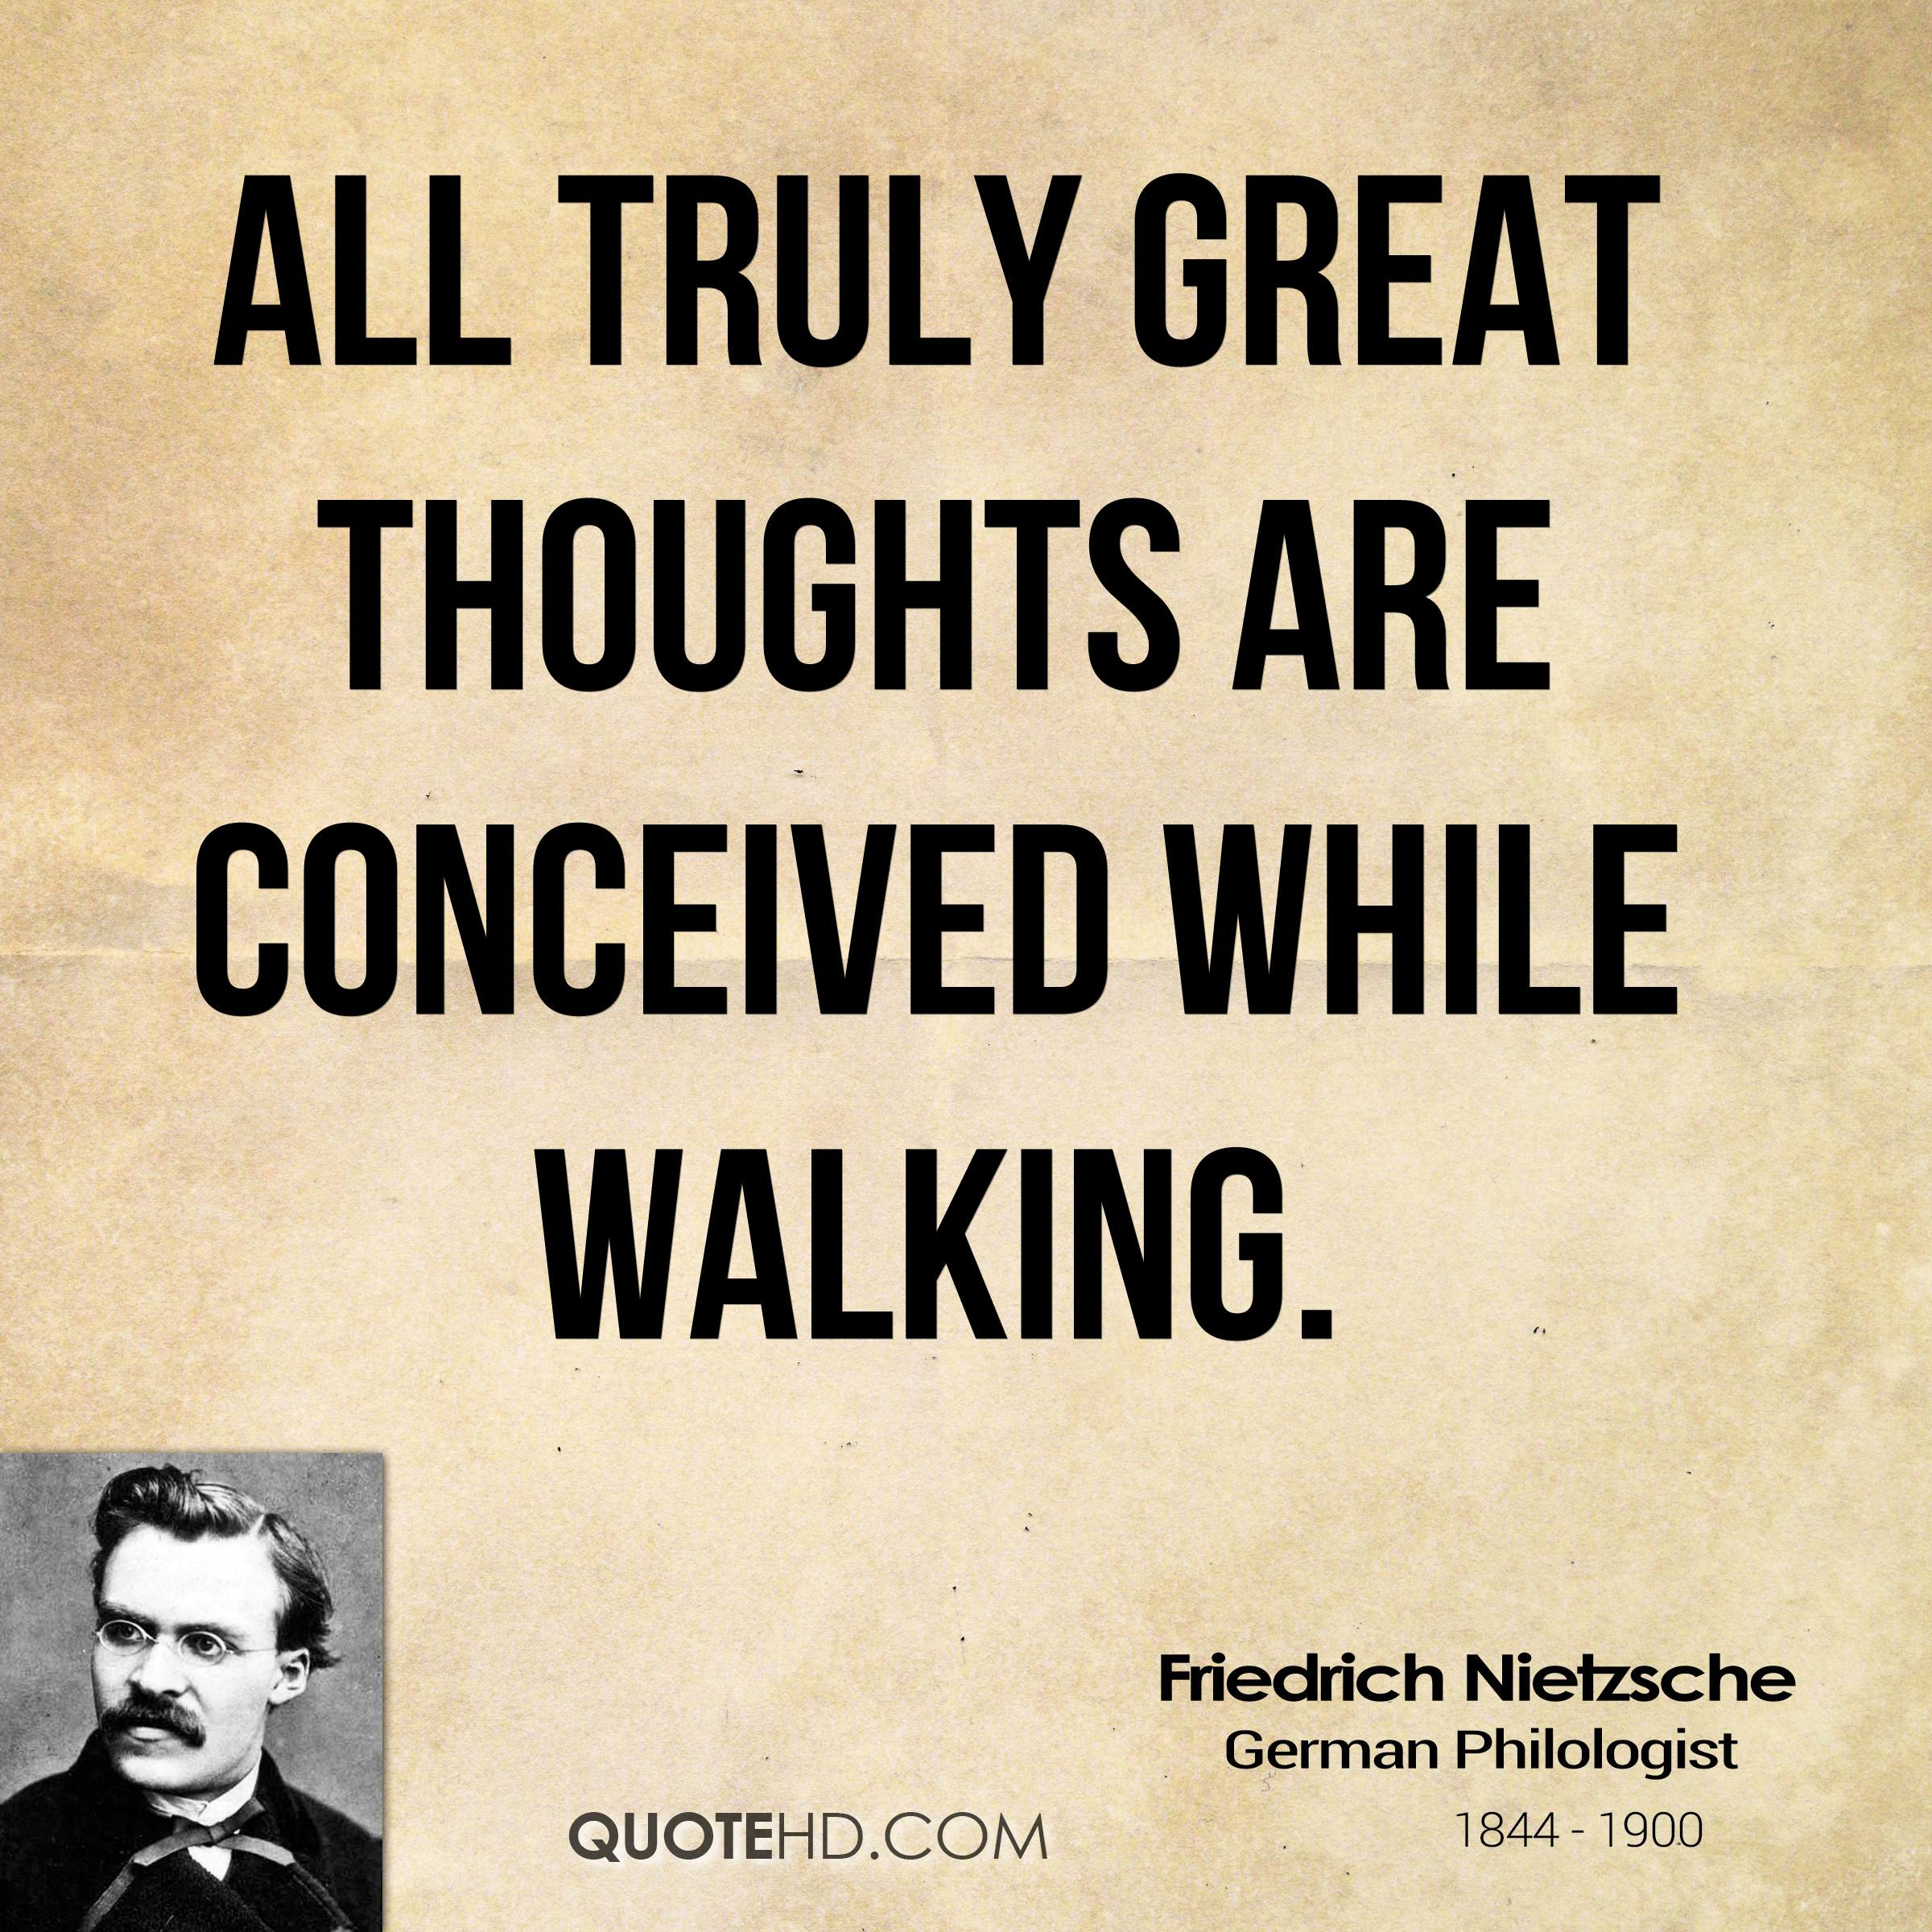 All truly great thoughts are conceived while walking.